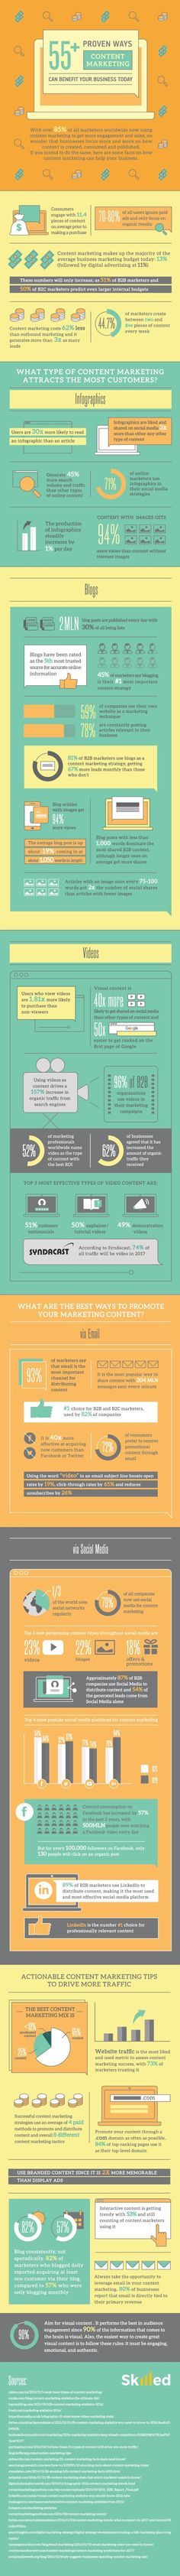 55+ Proven Ways Content Marketing Can Help Your Business (infographic)